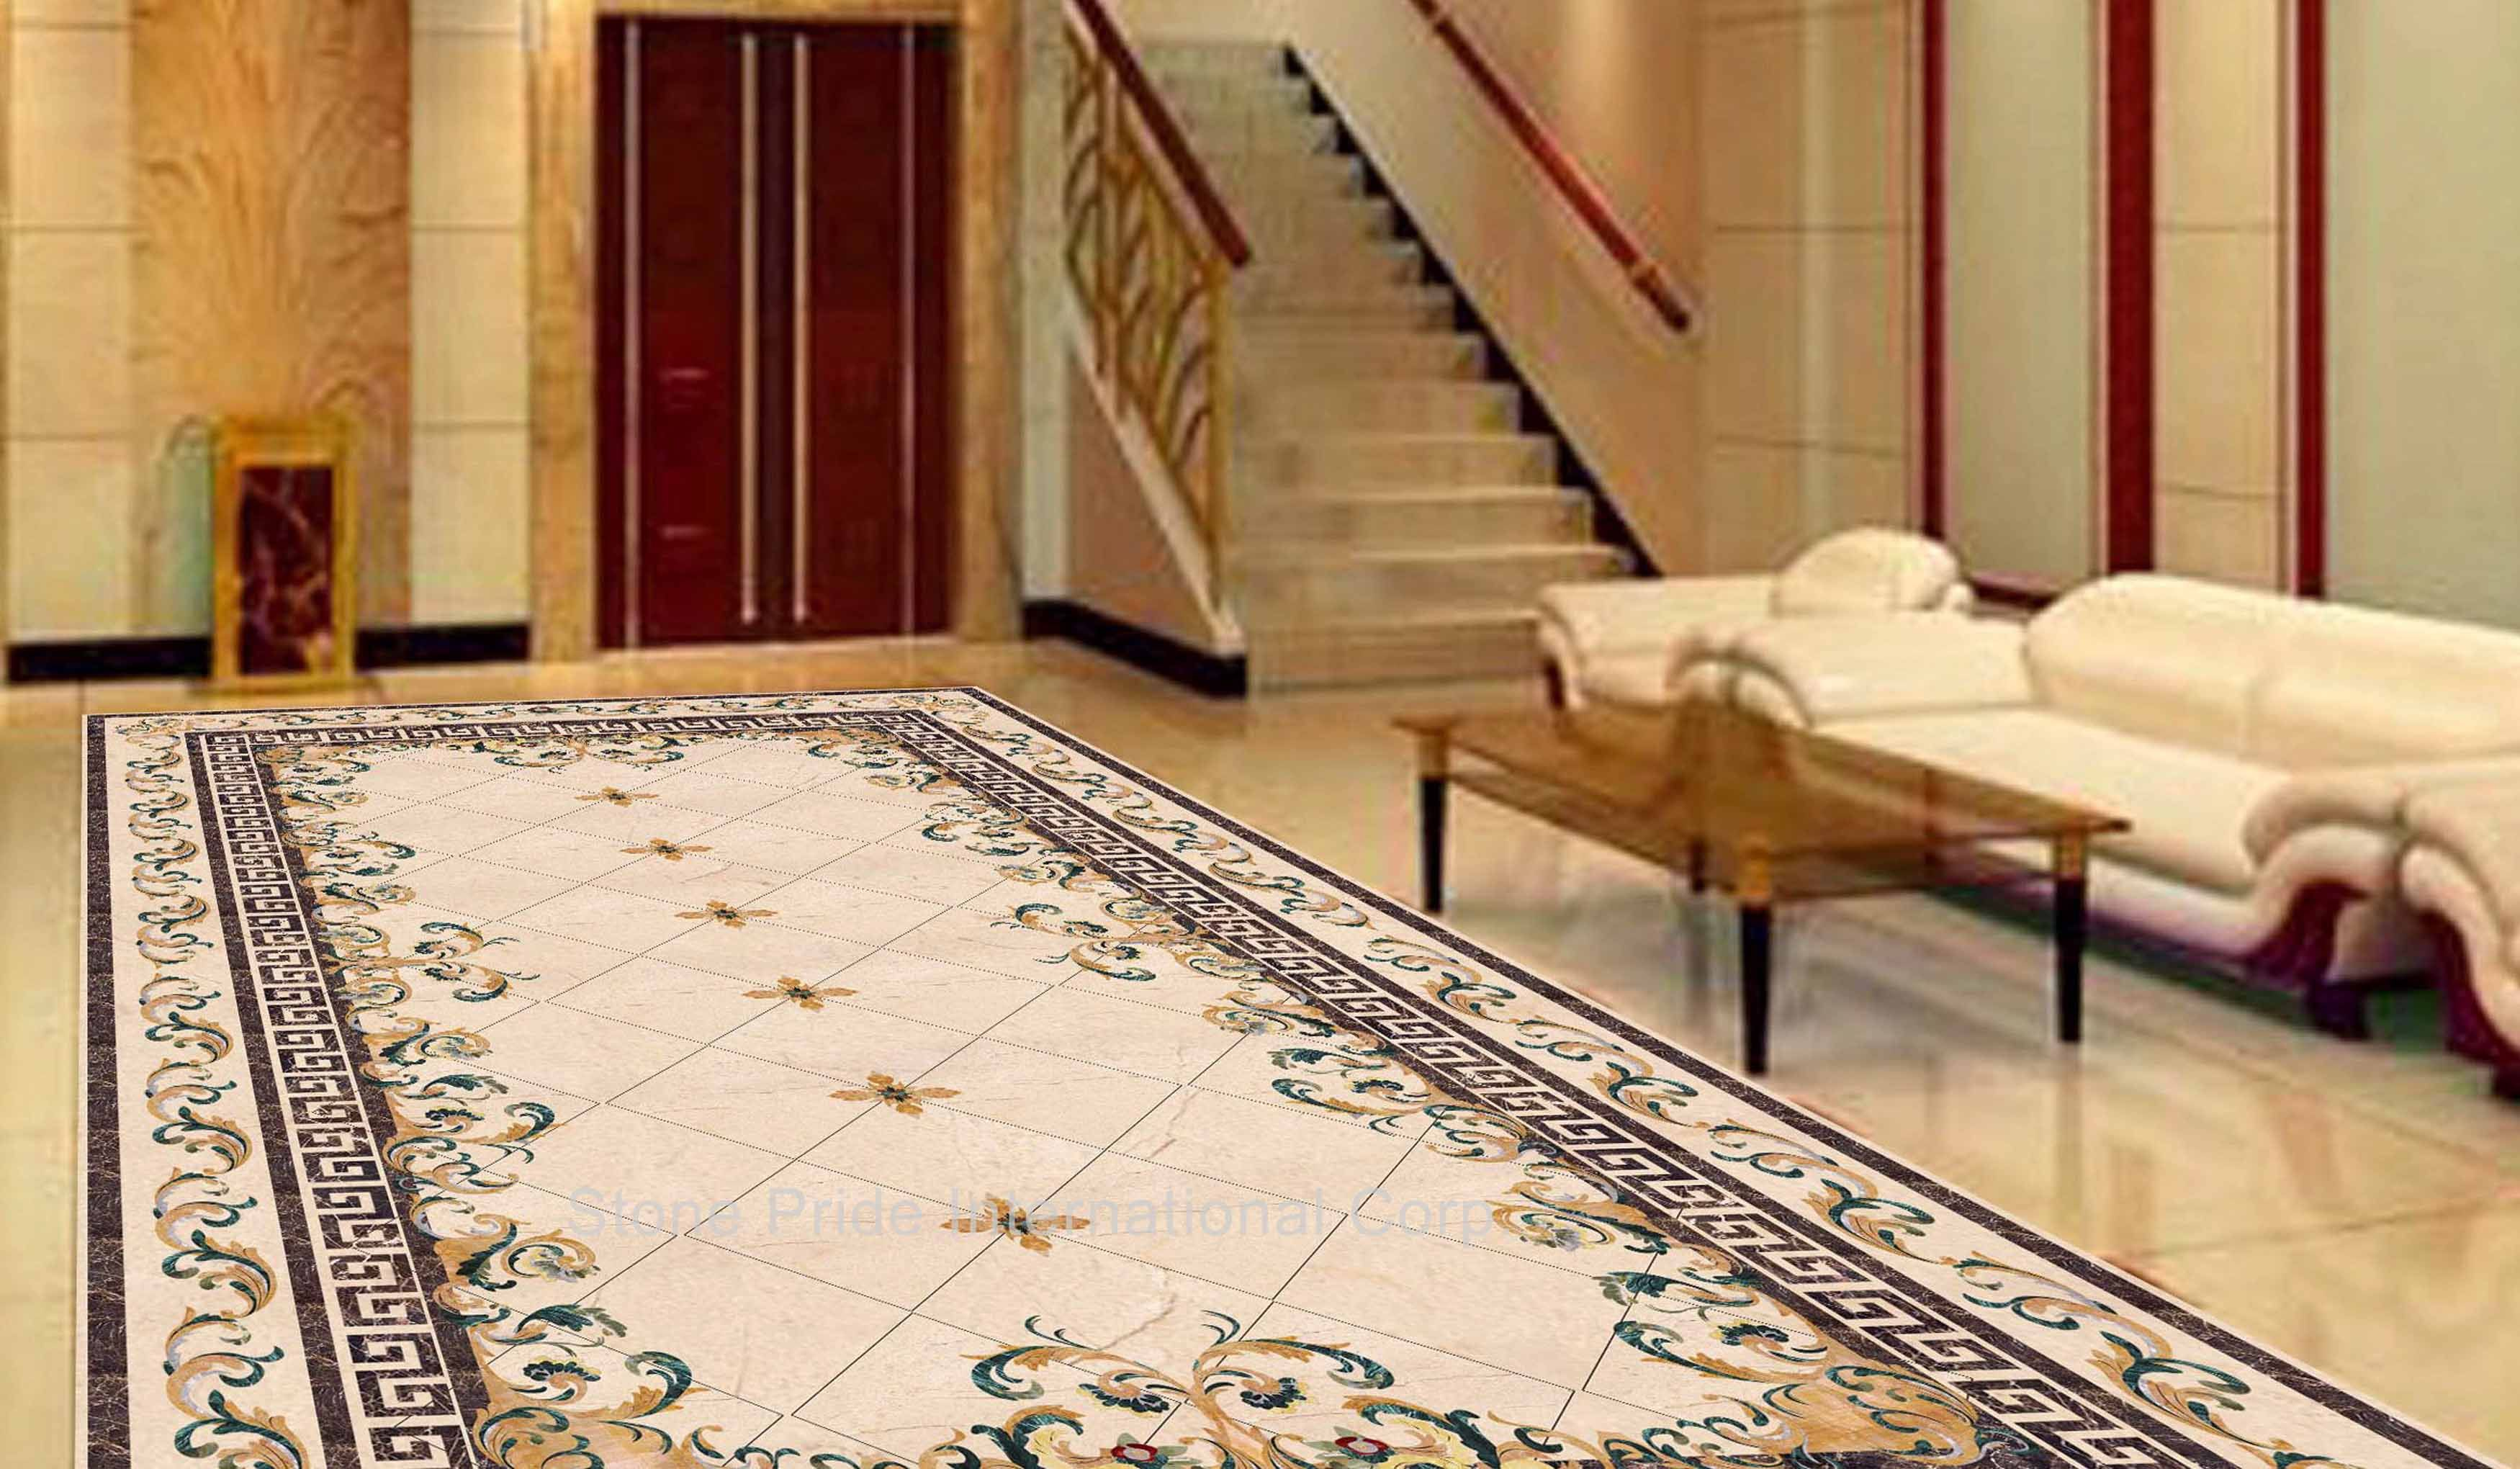 Floor design floor design floor design ideas floor for White tile flooring ideas